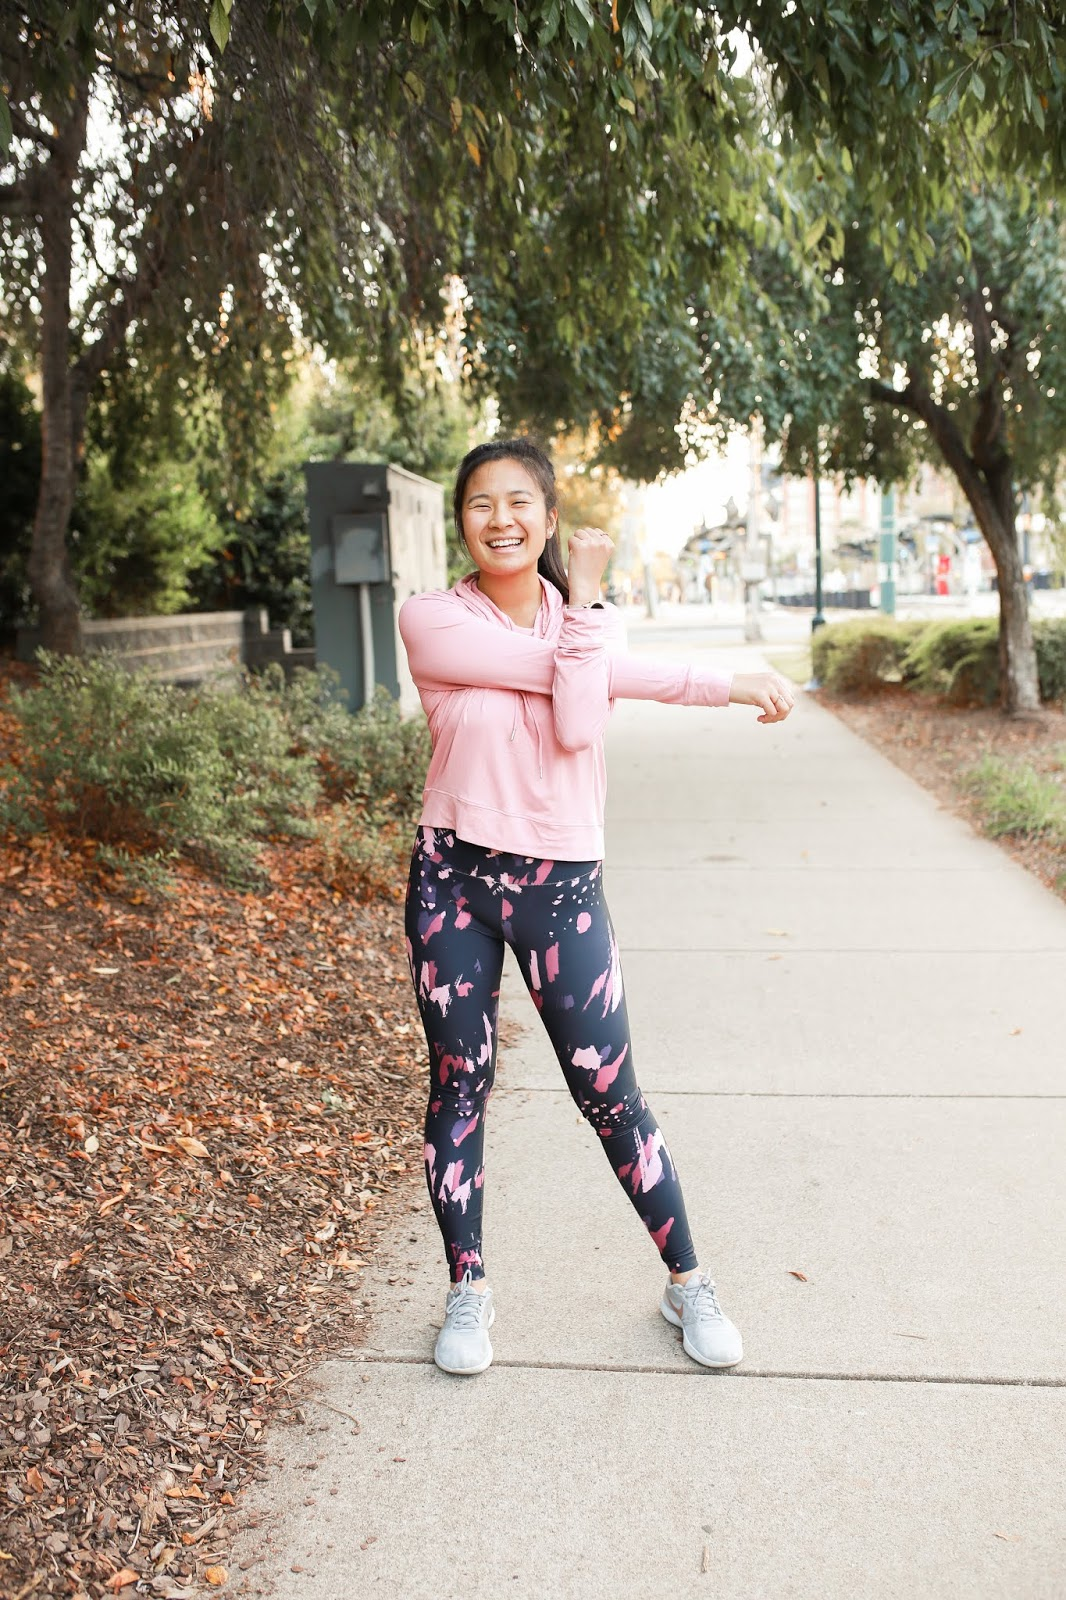 Where to buy affordable activewear